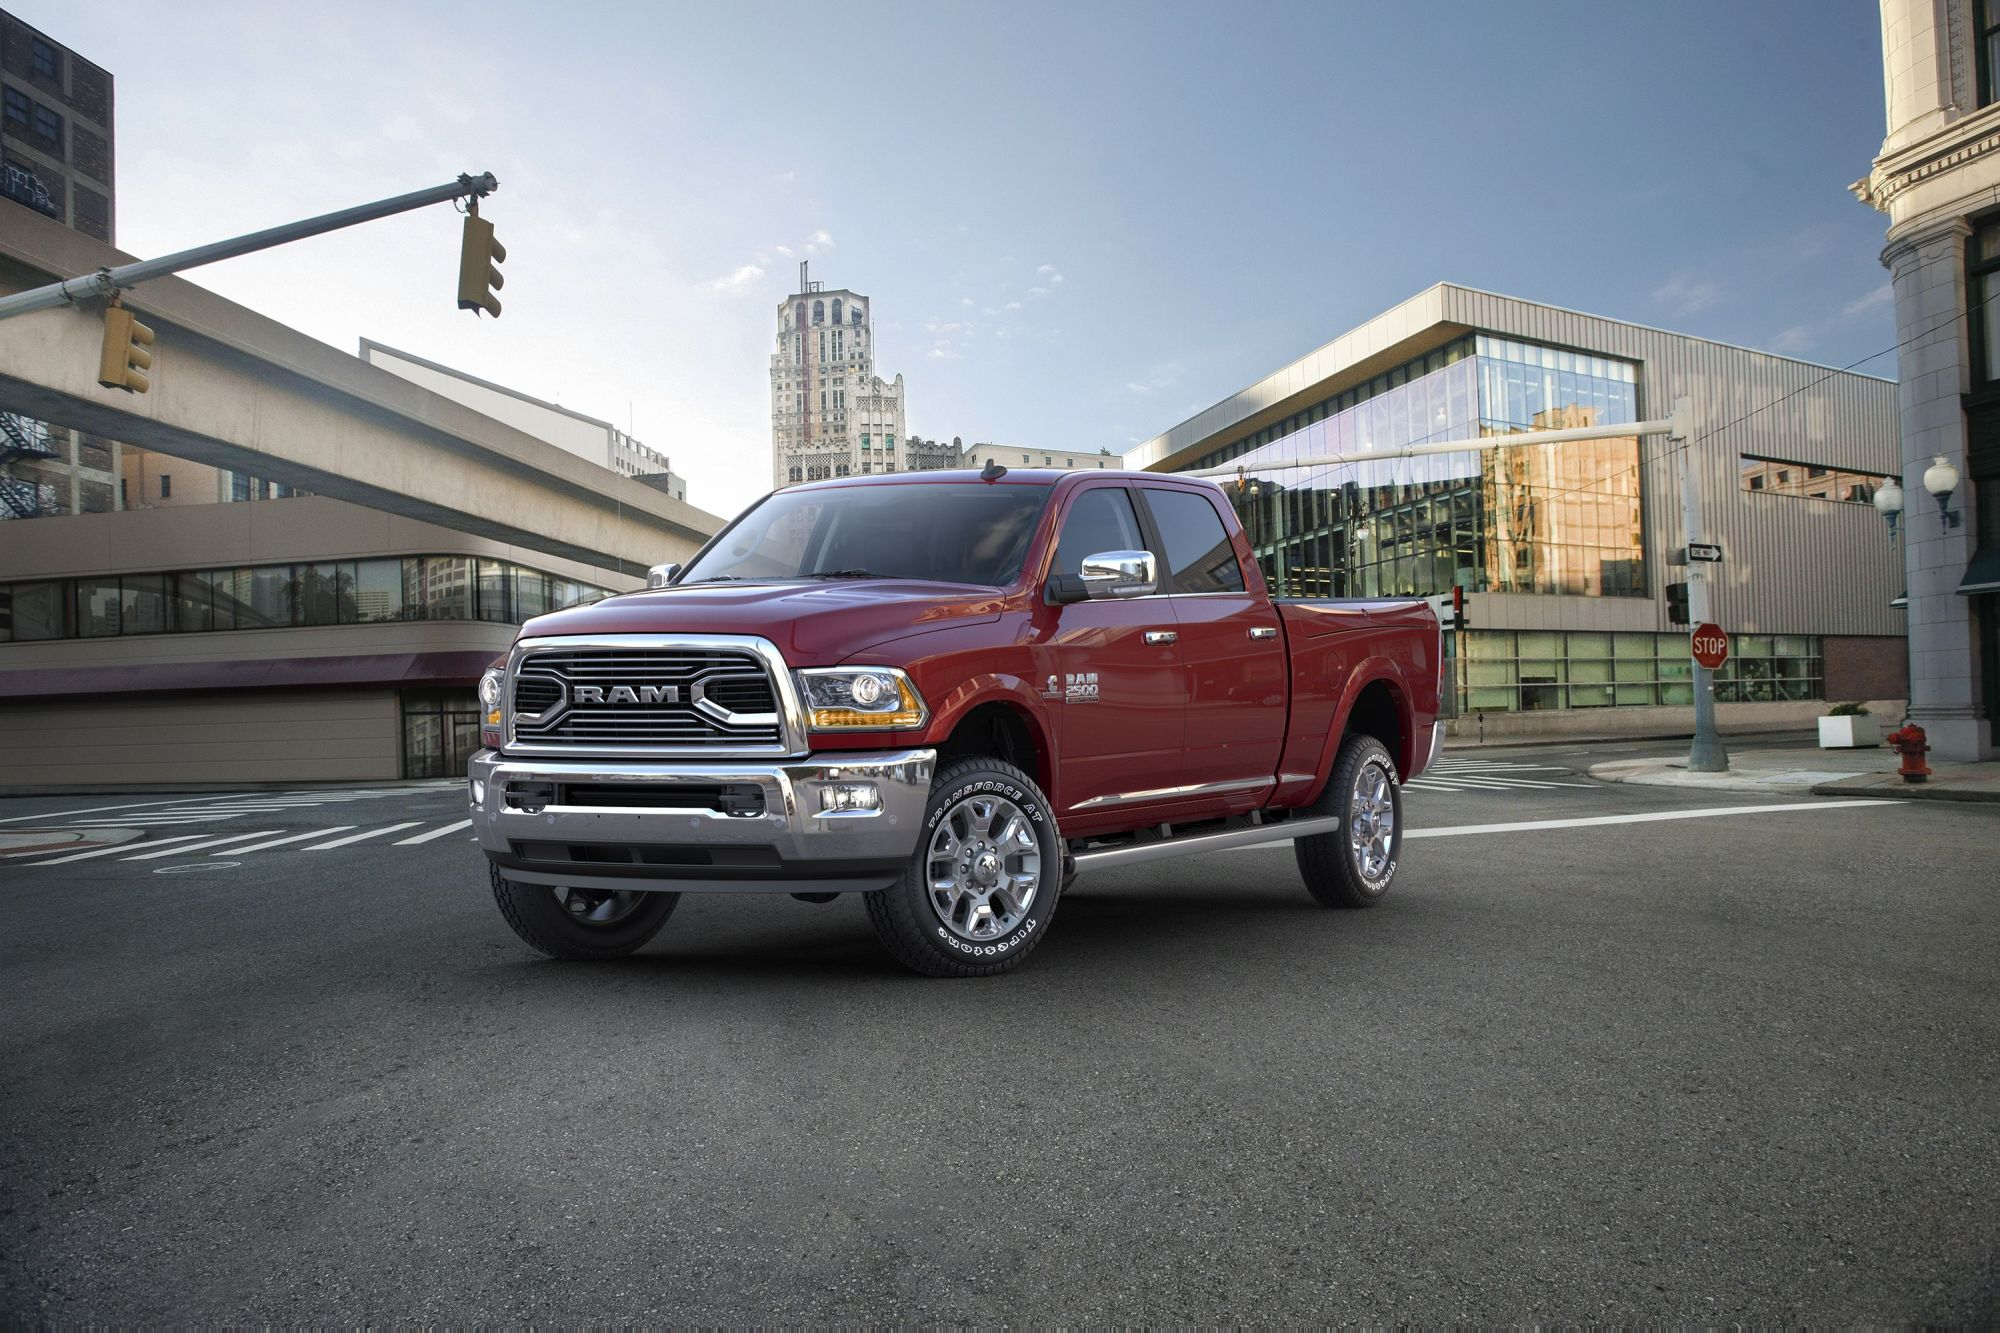 hight resolution of ram hd trucks in recall for steering problem that could cause crashes